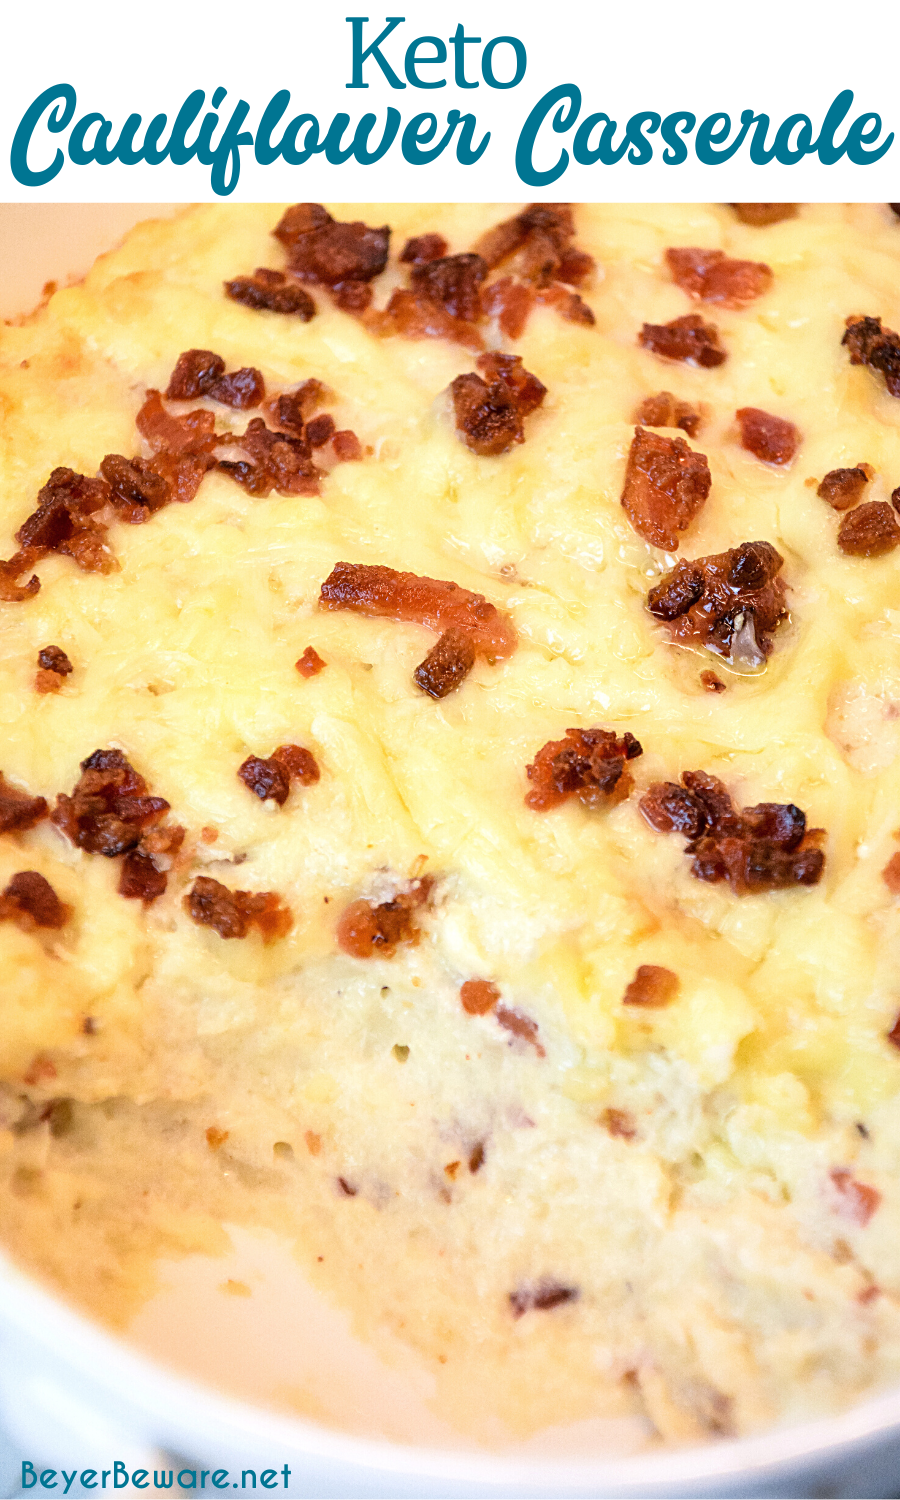 Keto cauliflower casserole is a loaded mashed cauliflower with white cheddar cheese and bacon to substitute for your mashed potatoes.